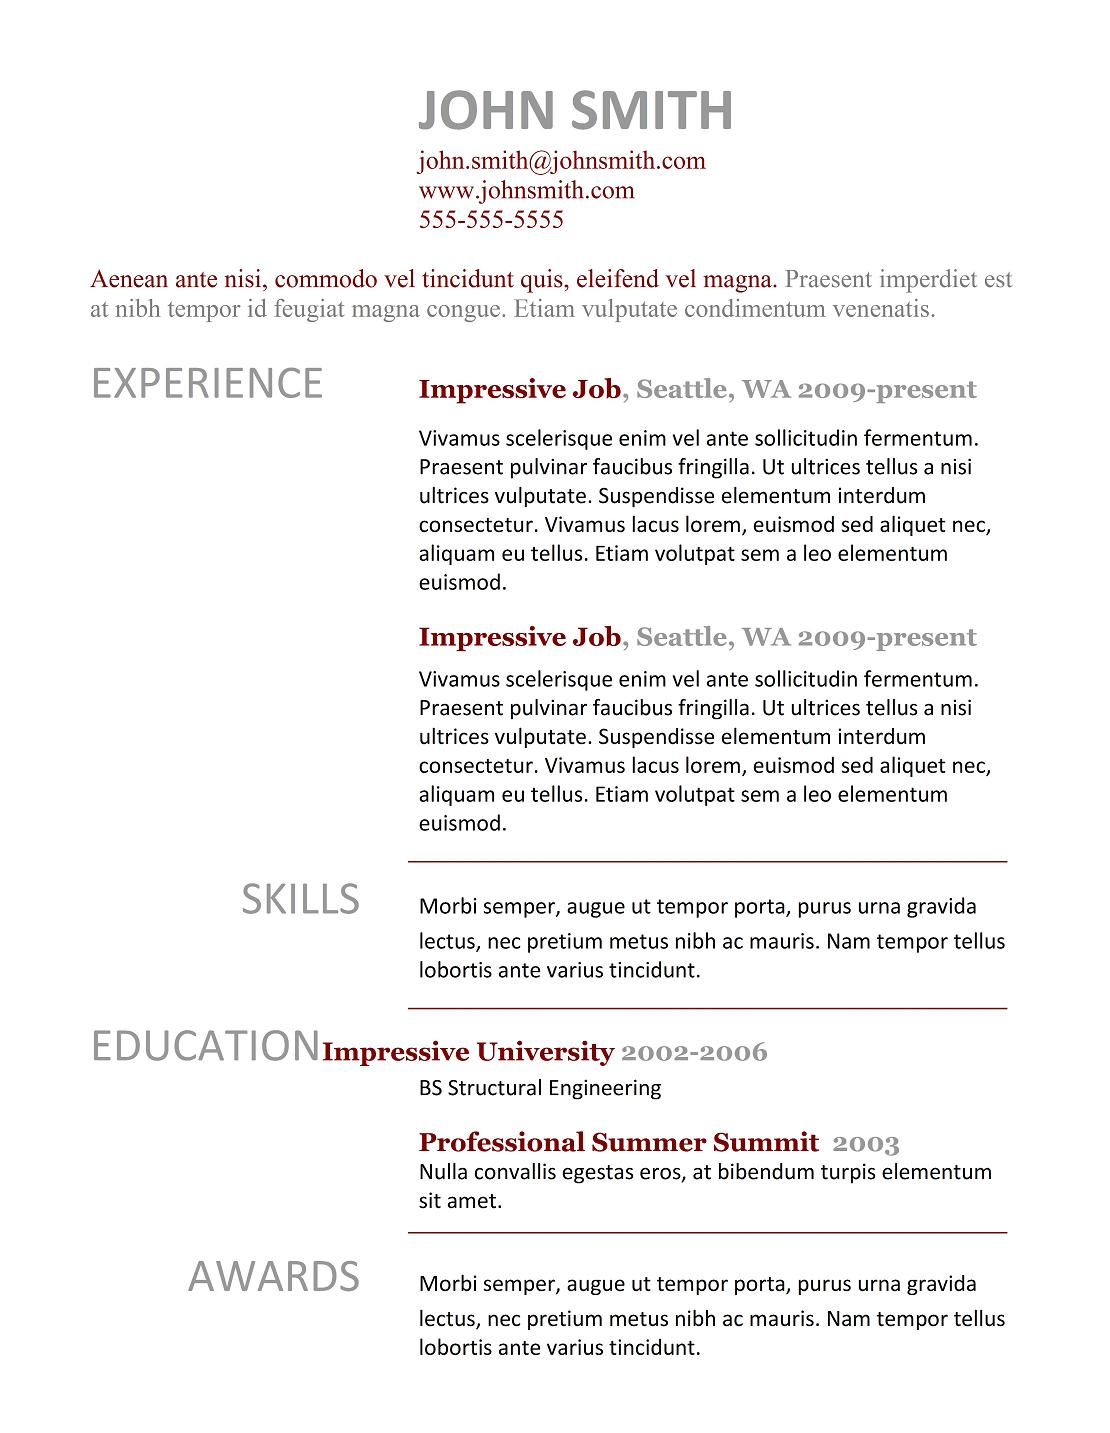 9 best free resume templates download for freshers - Resume Template For A Job